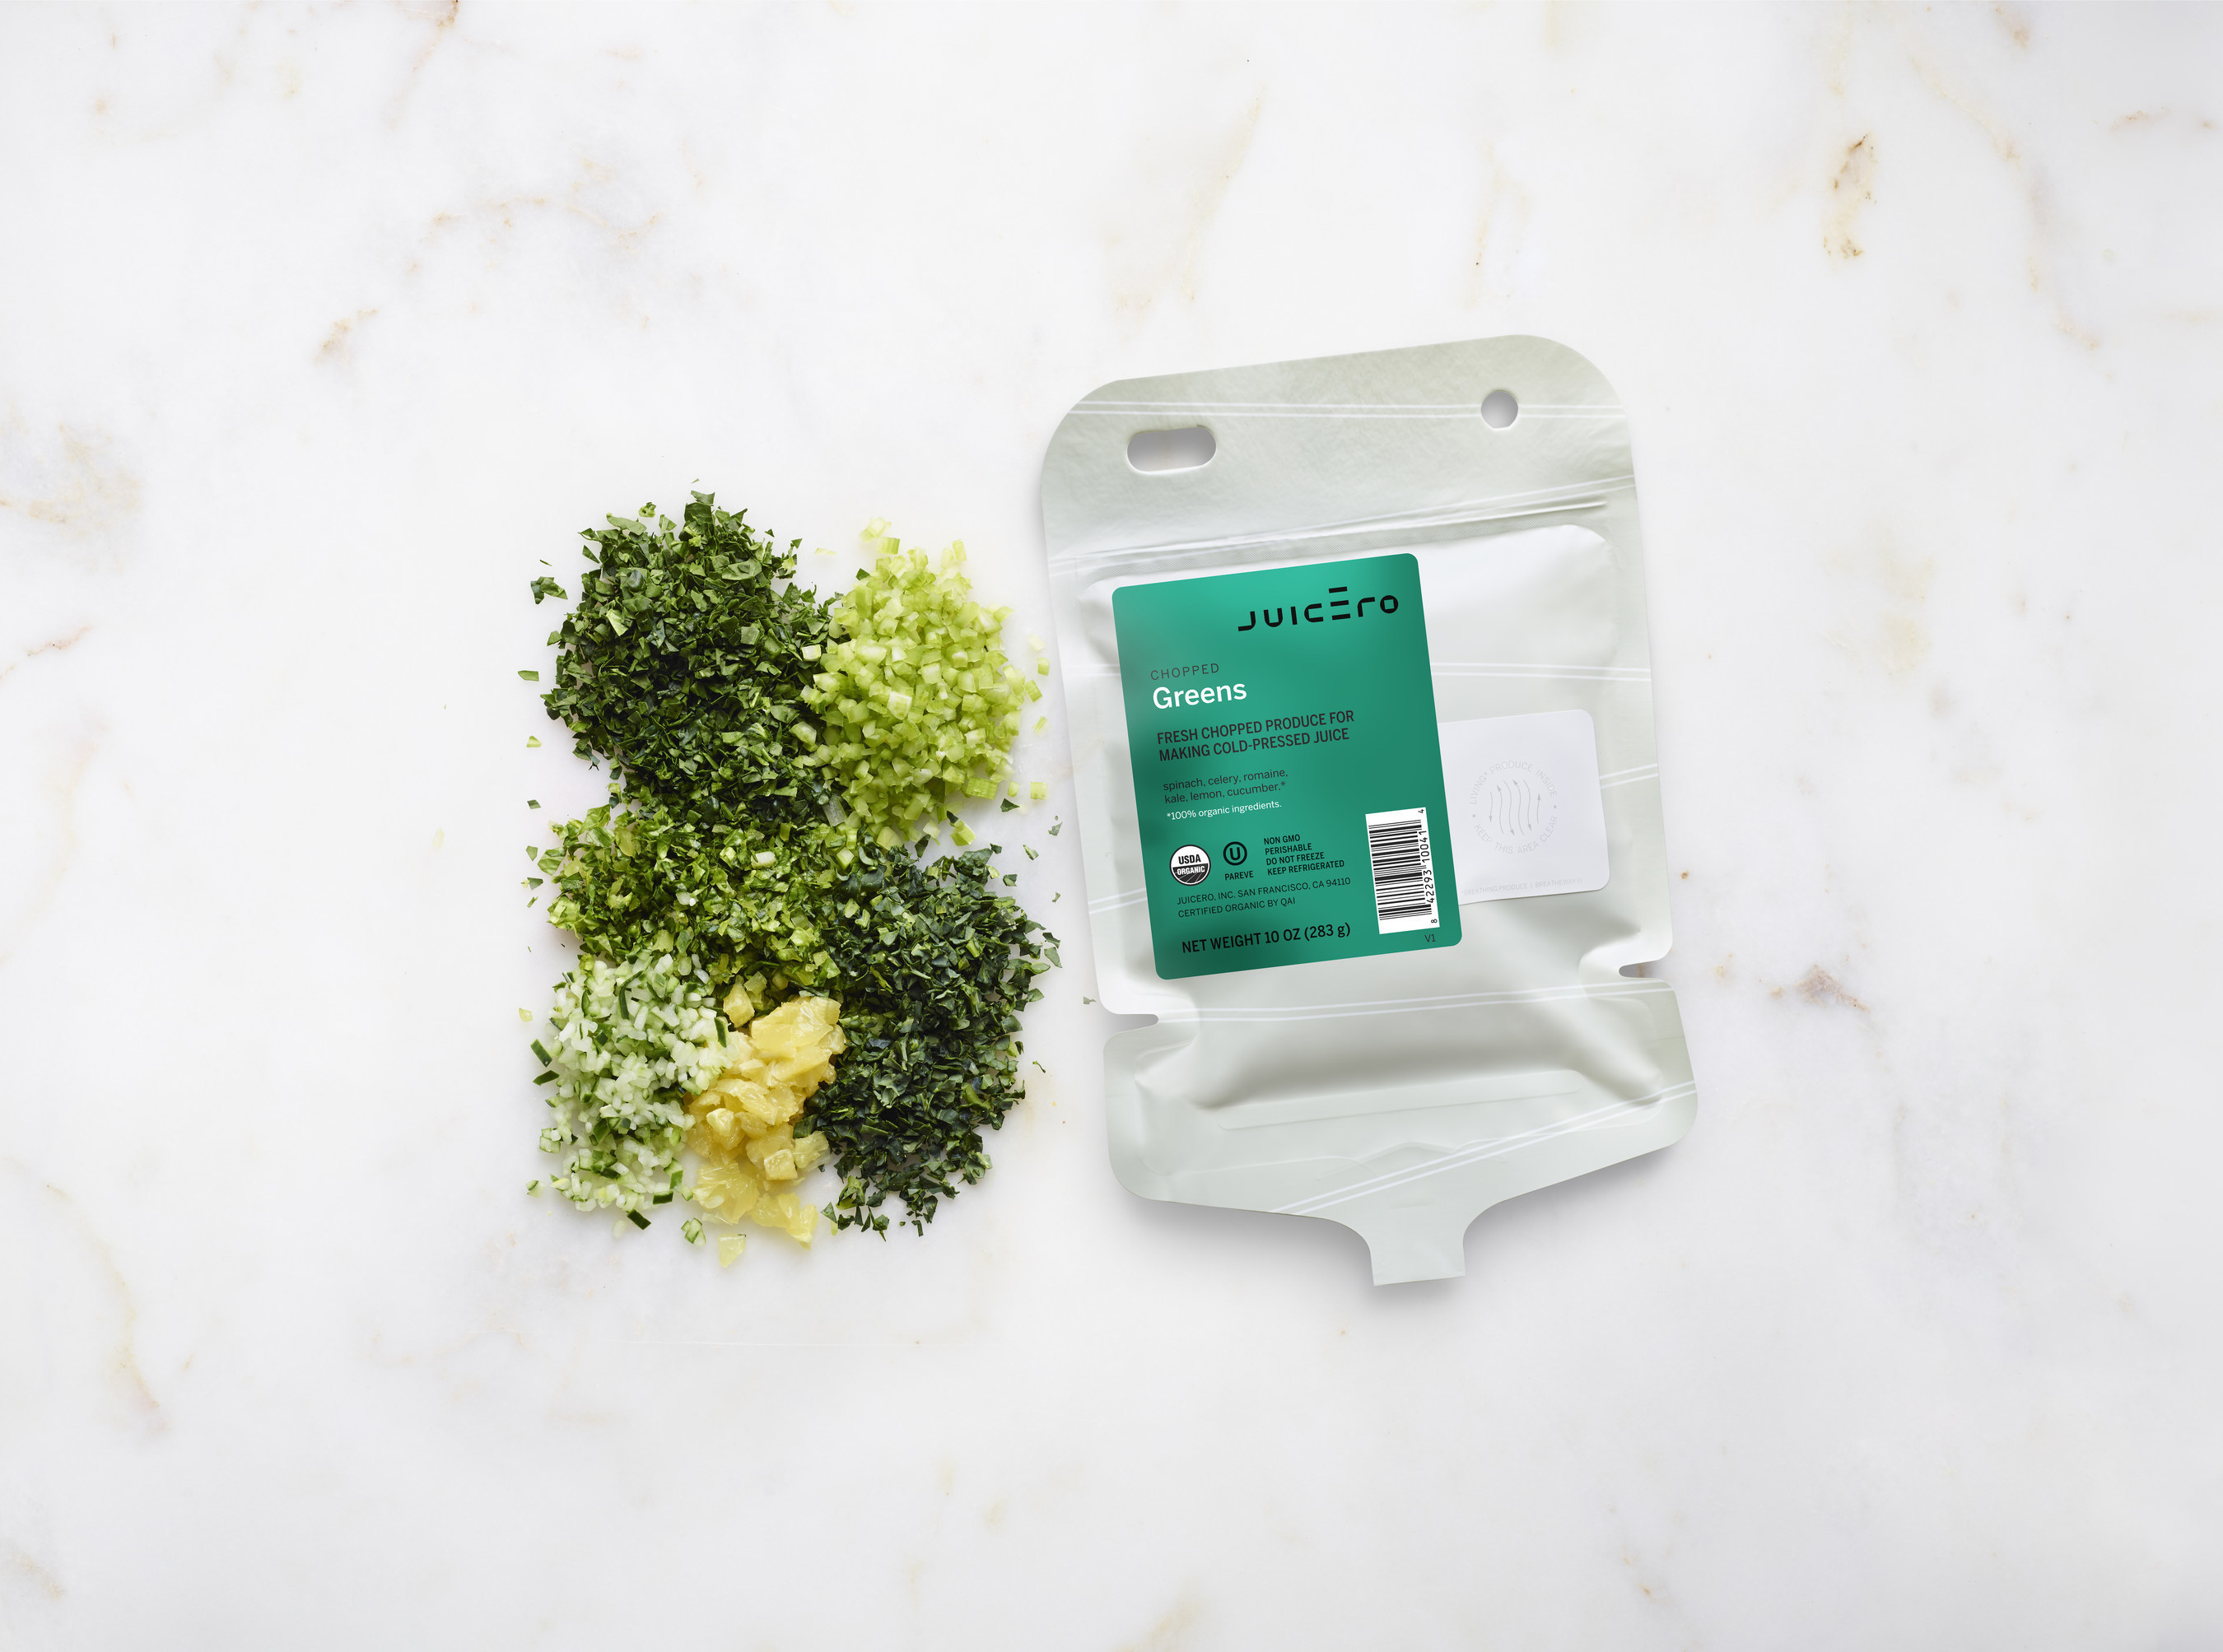 Juicero Produce Pack